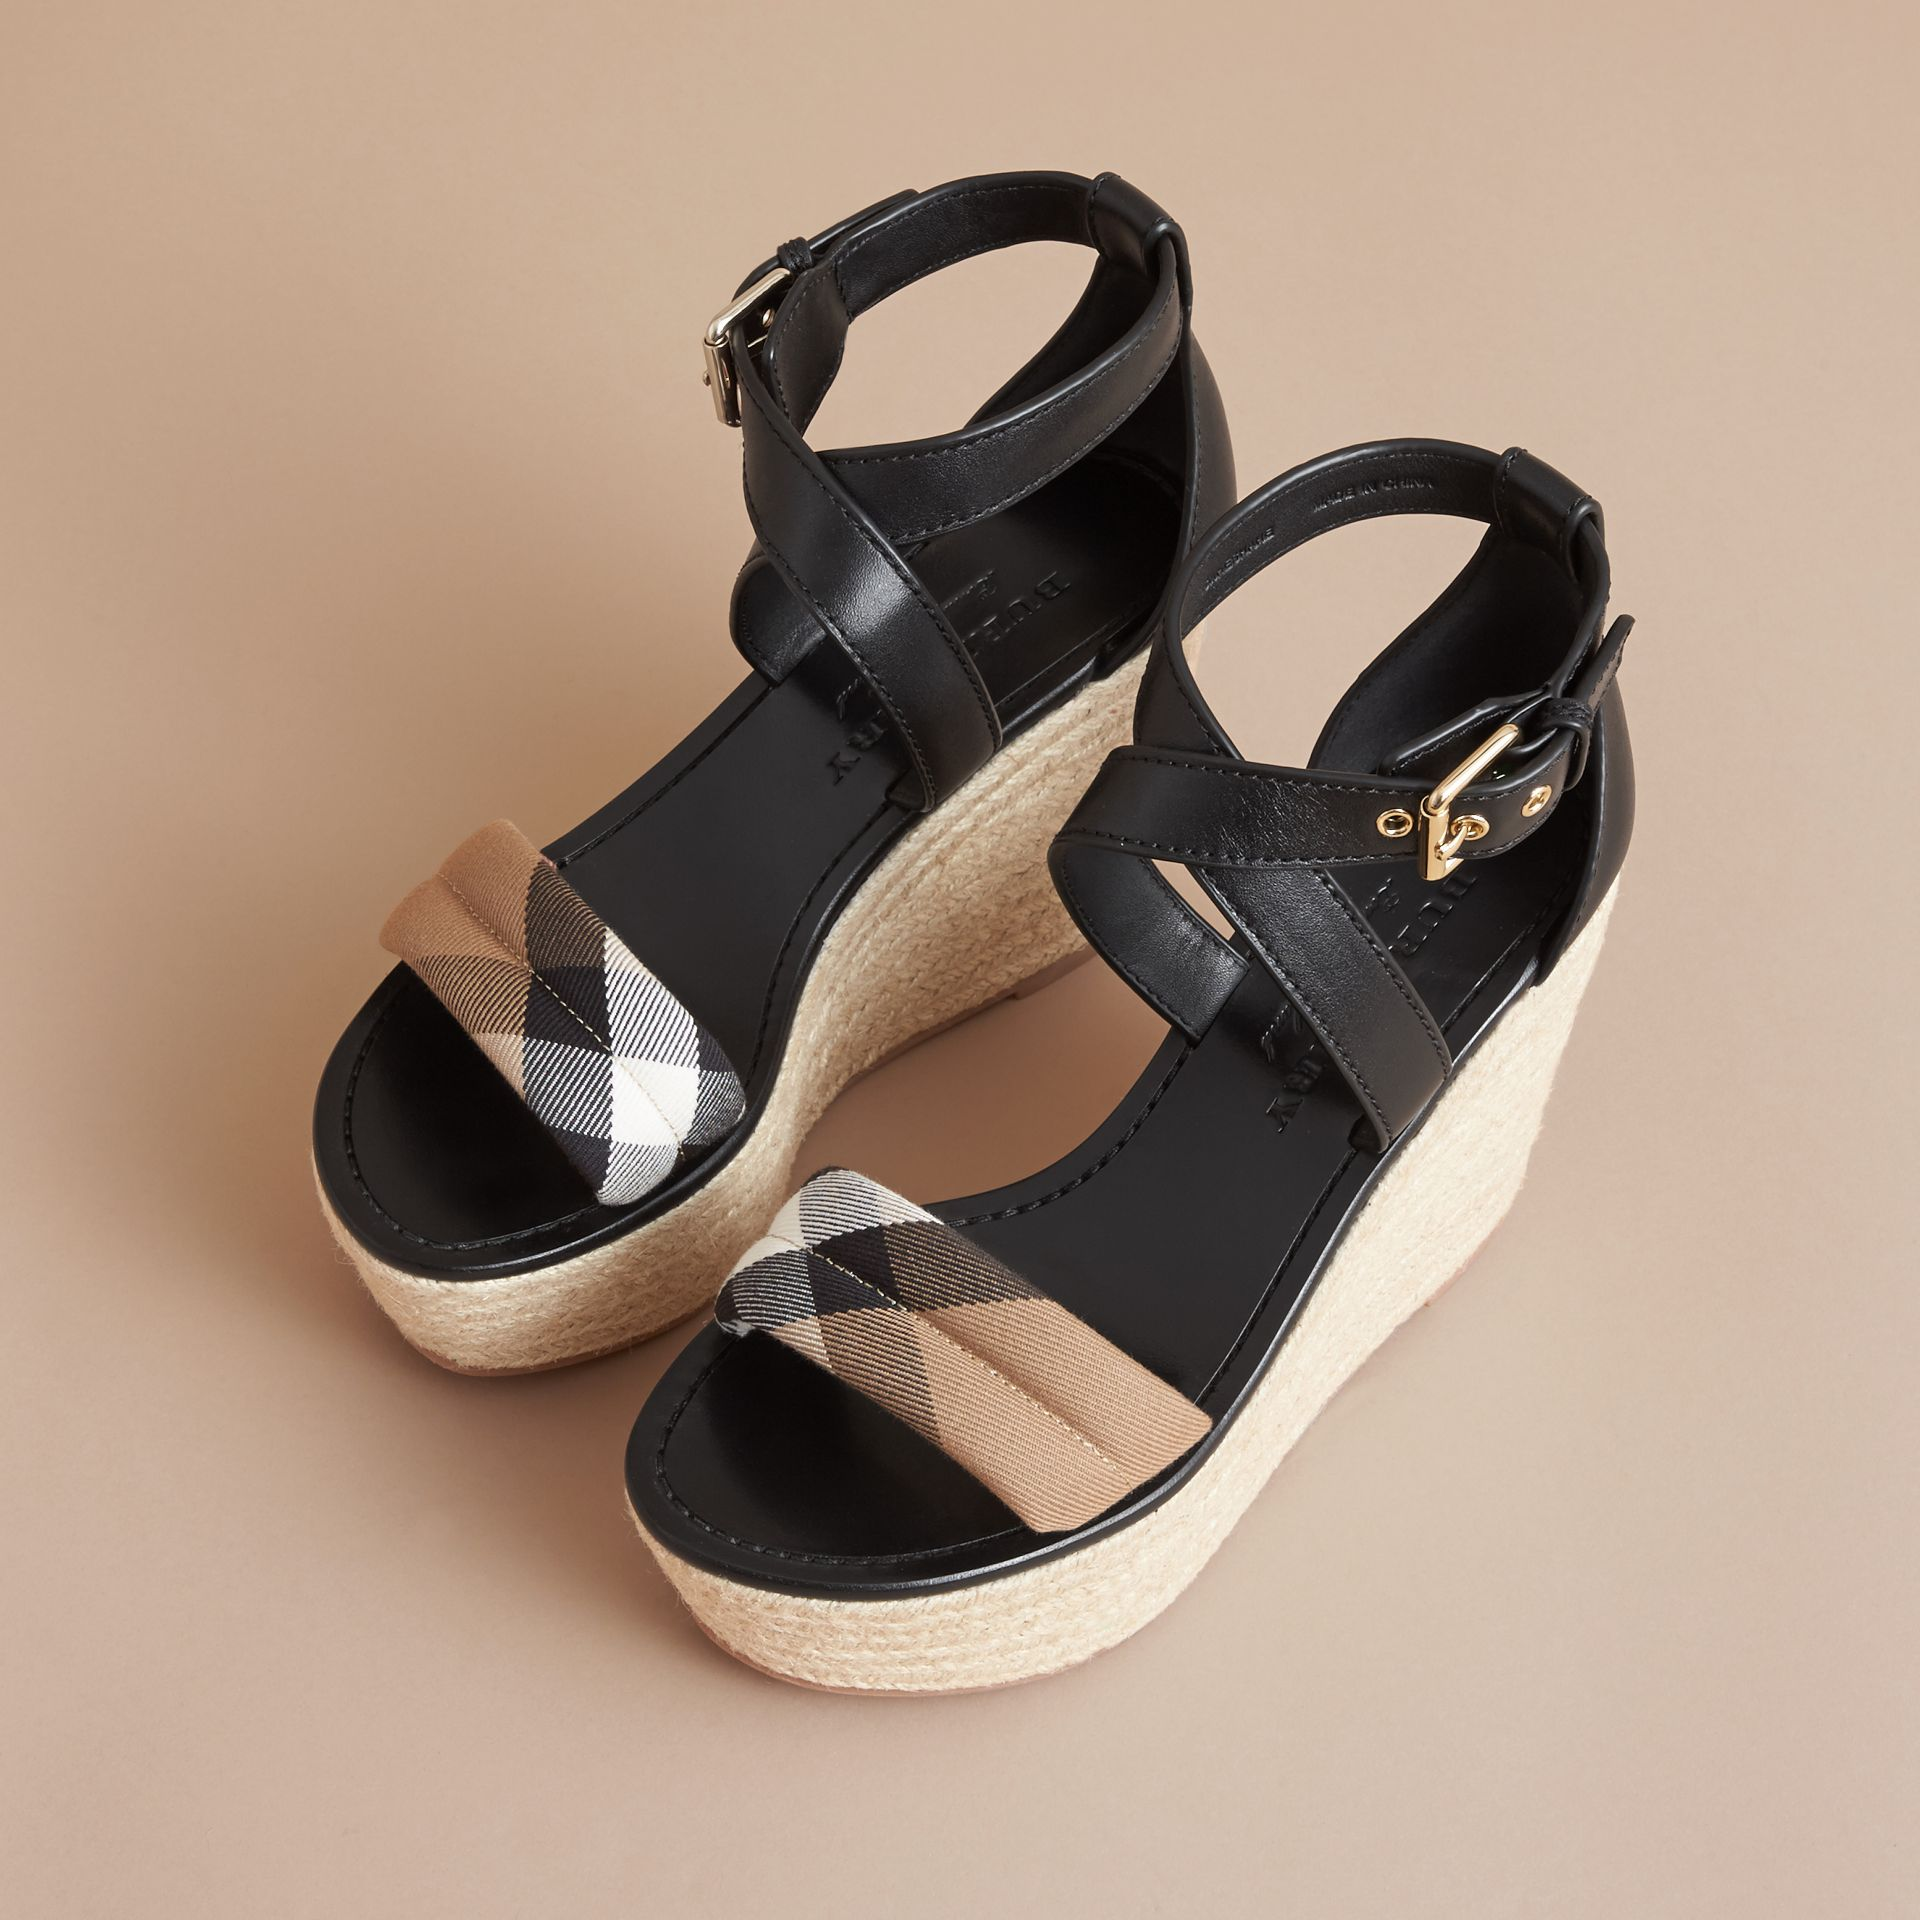 Leather and House Check Platform Espadrille Wedge Sandals in Black - Women | Burberry Hong Kong - gallery image 4